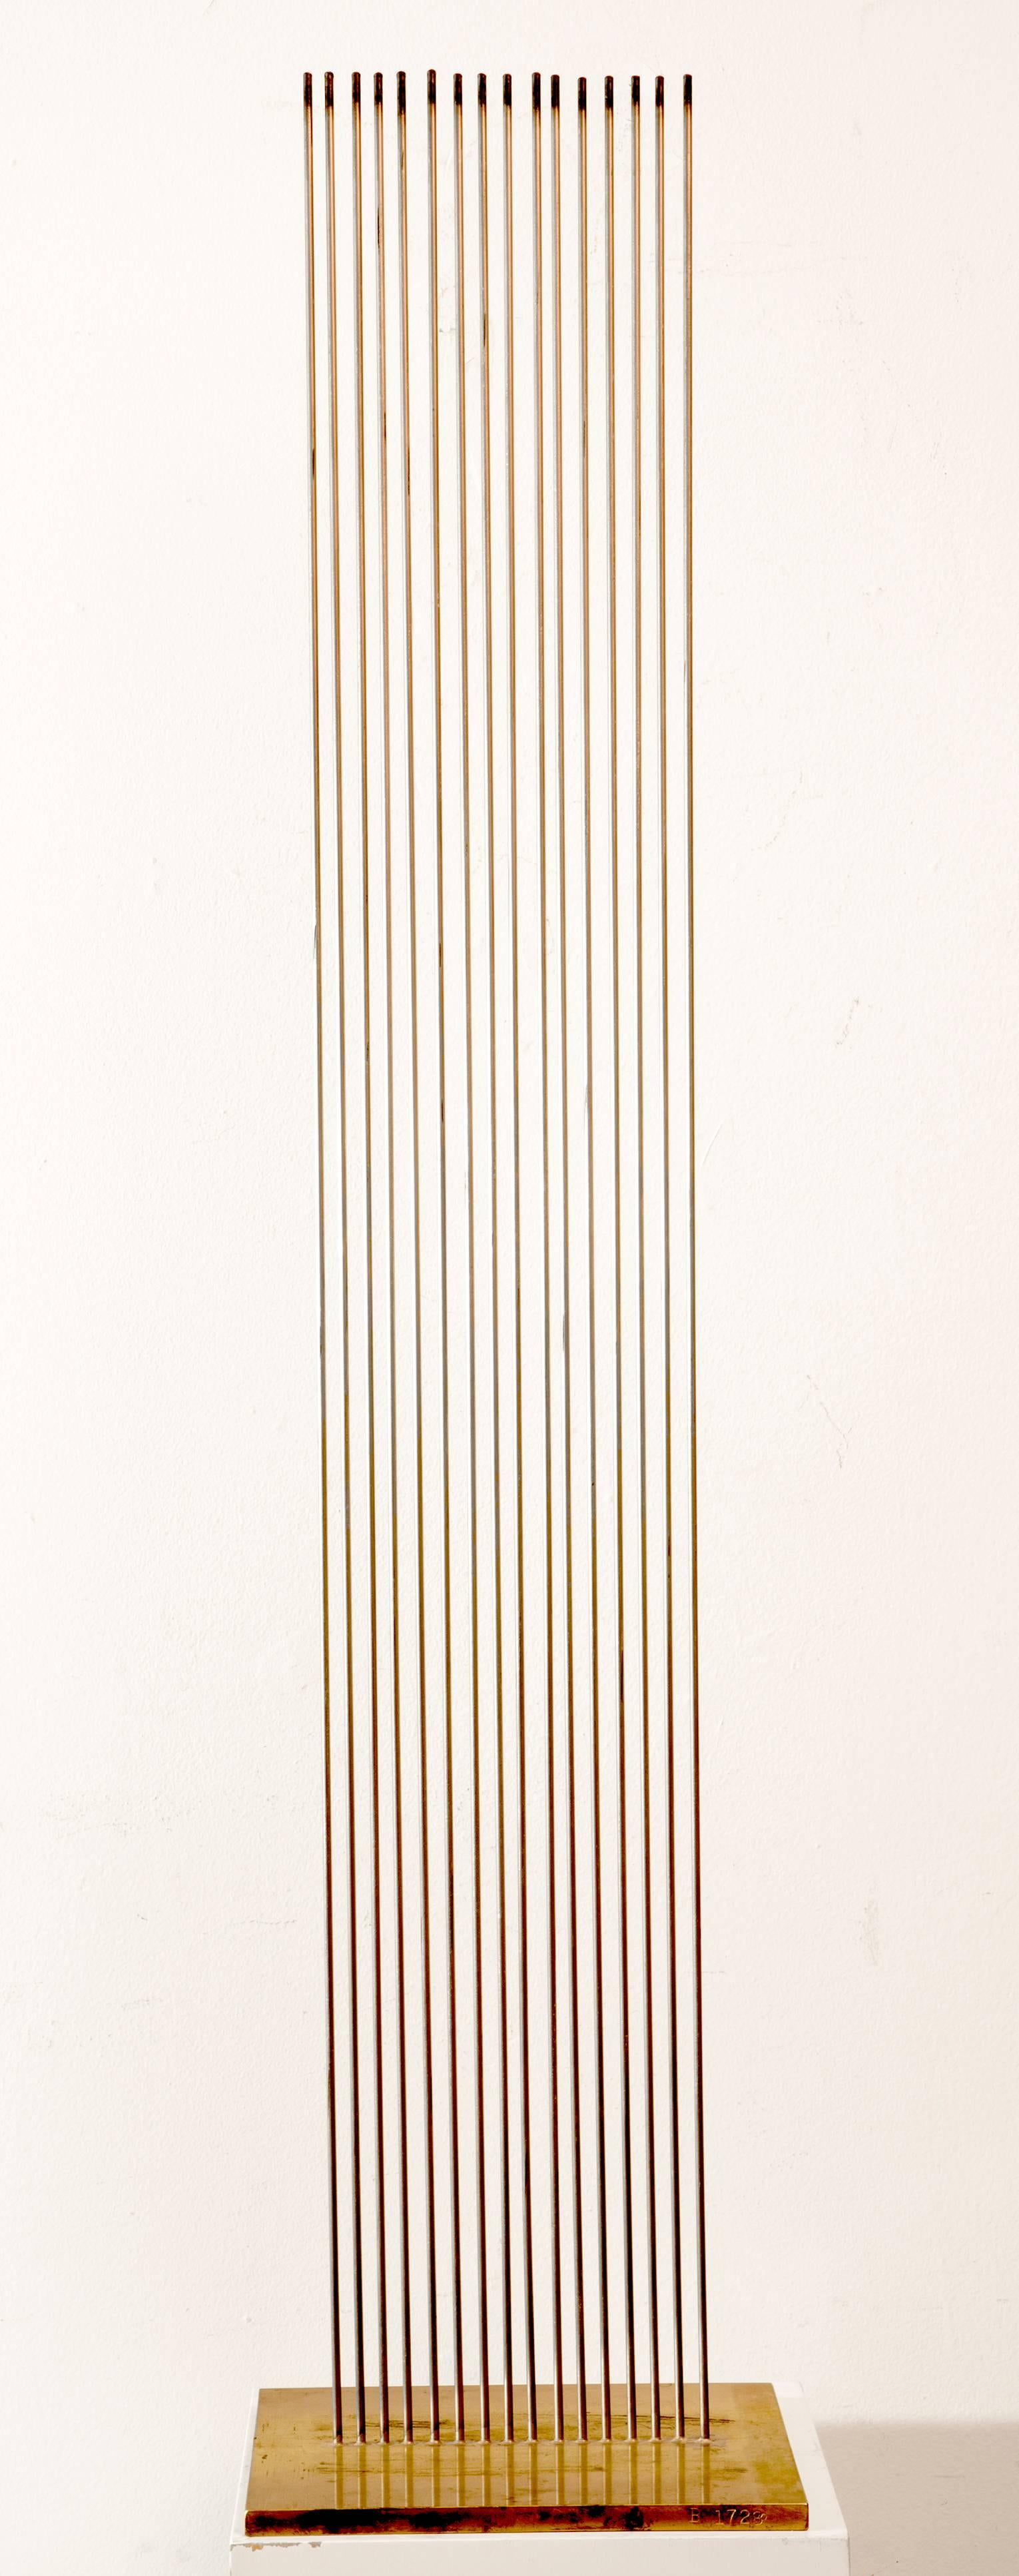 Monel Model For Sound Screen 16 Rods